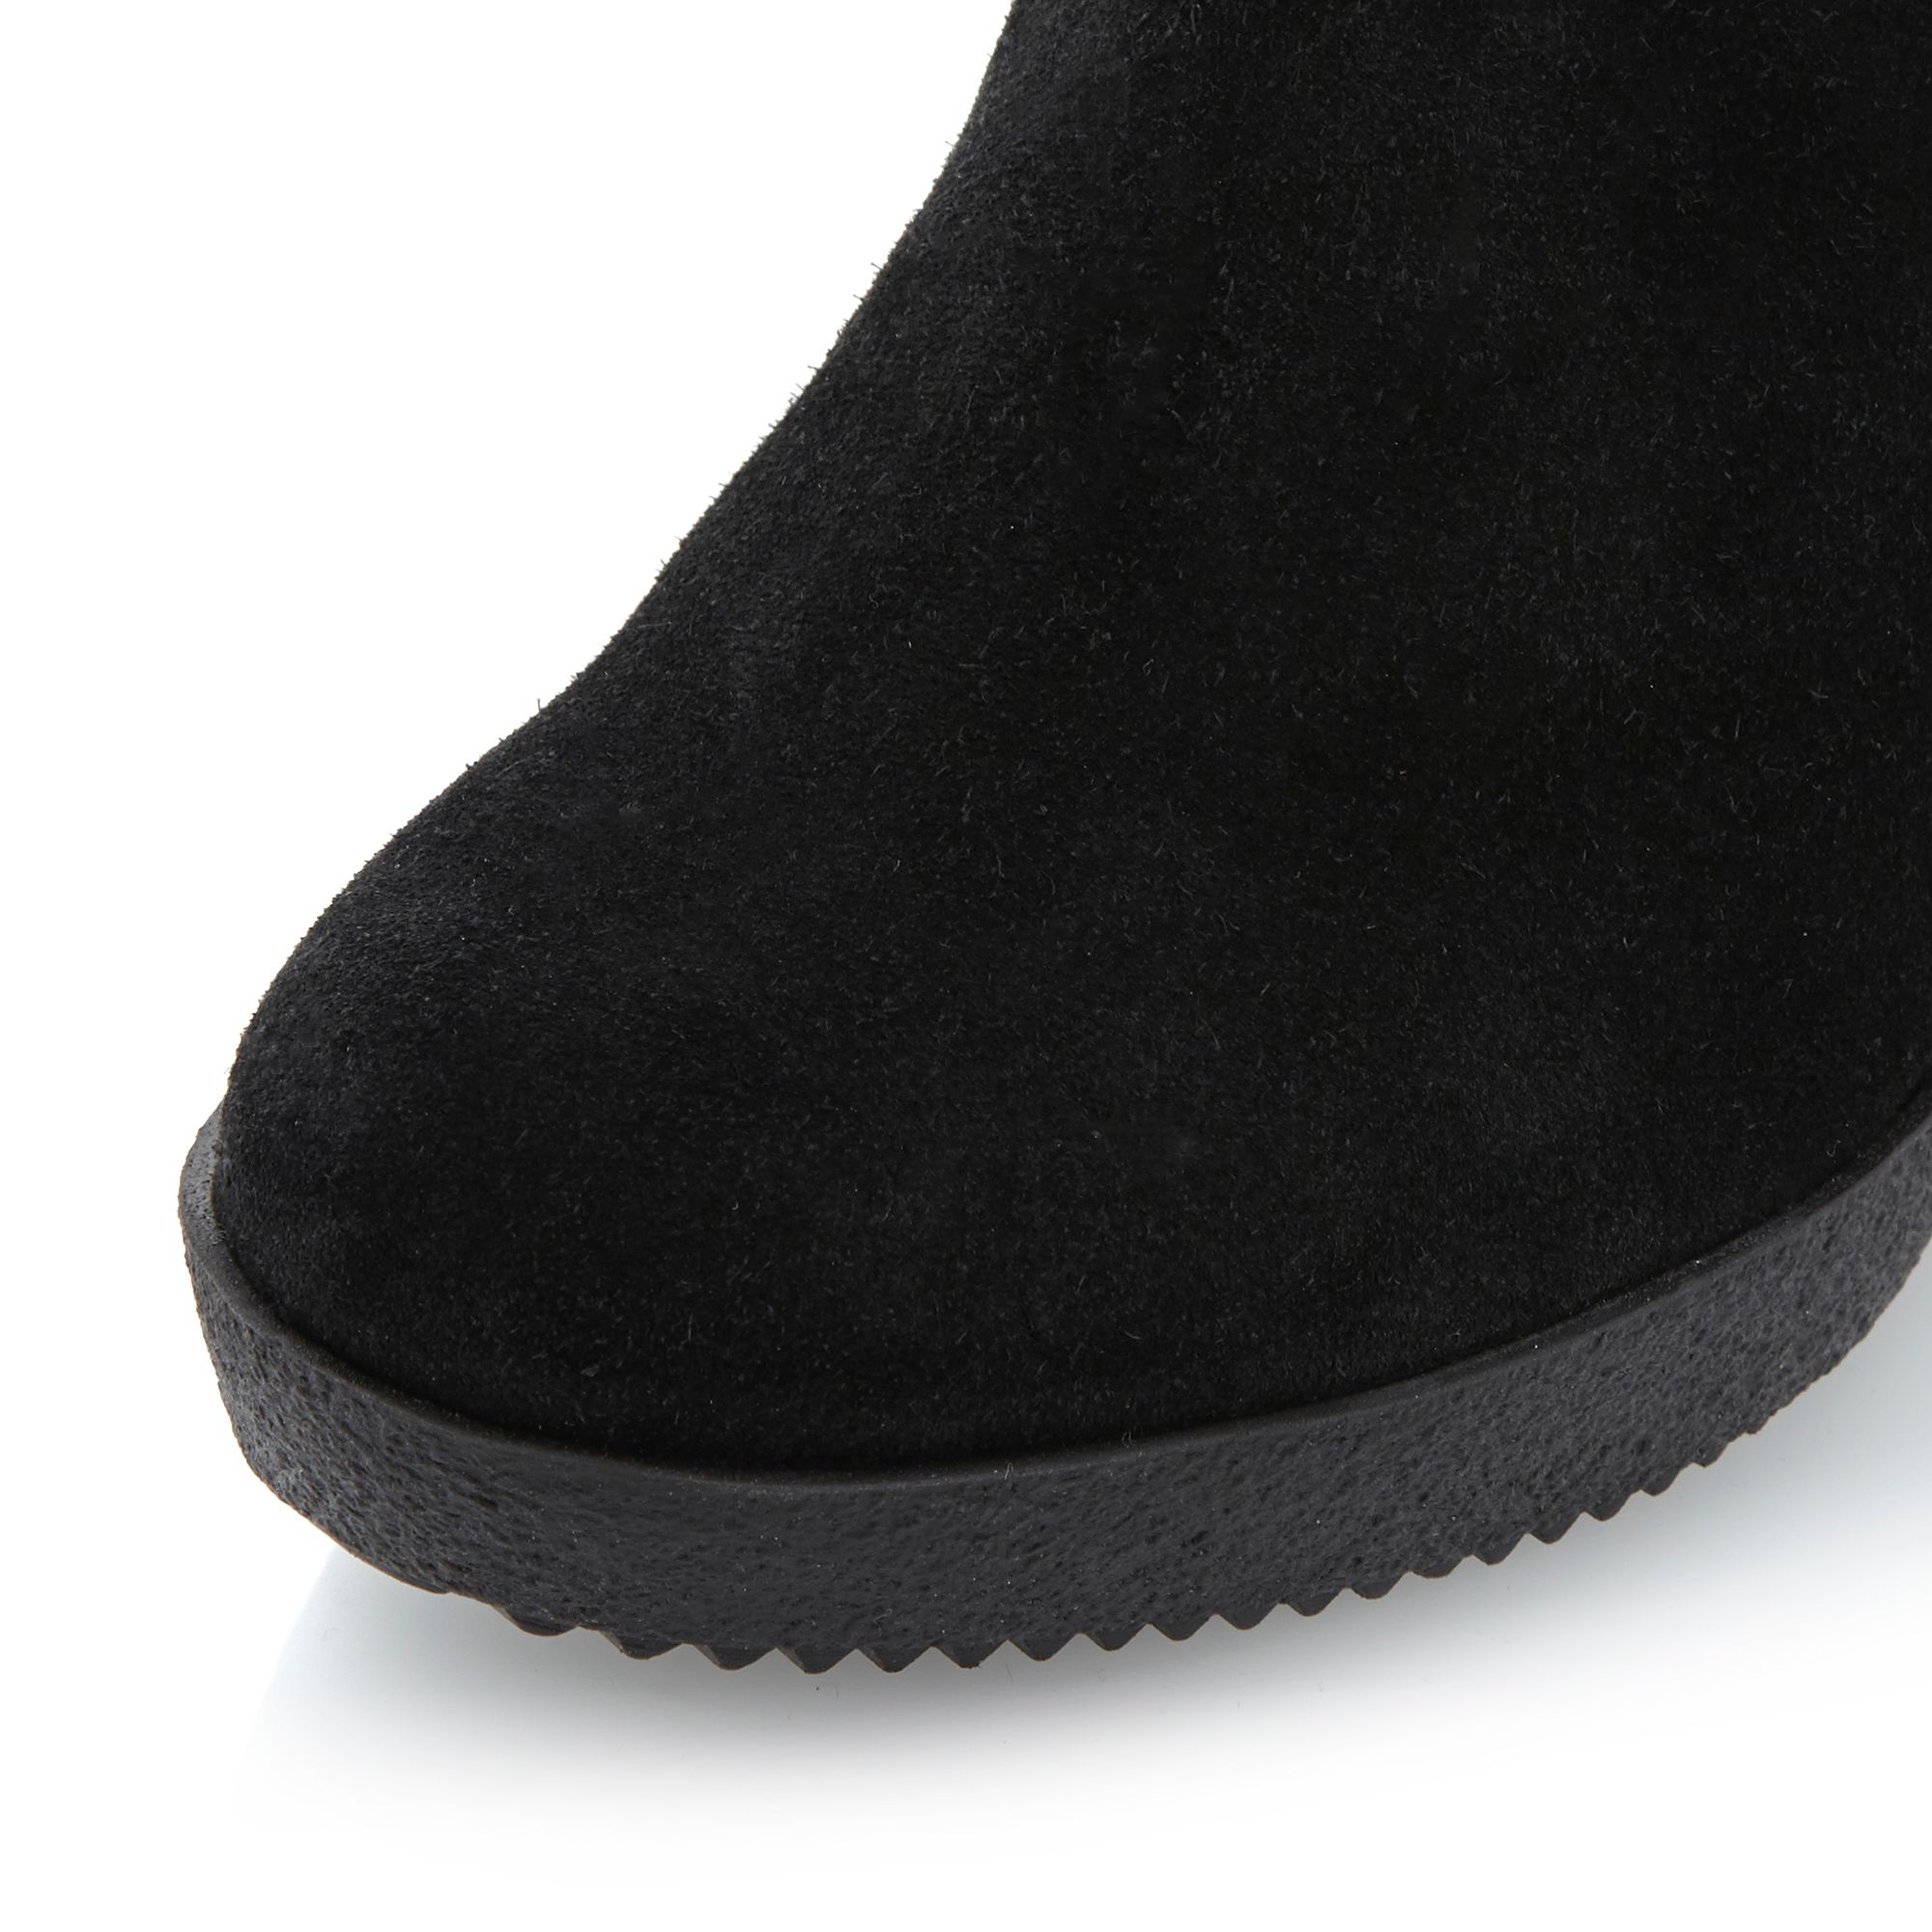 Dune Romas Fold Over Fabric Cuff Boots in Black Suede (Black)